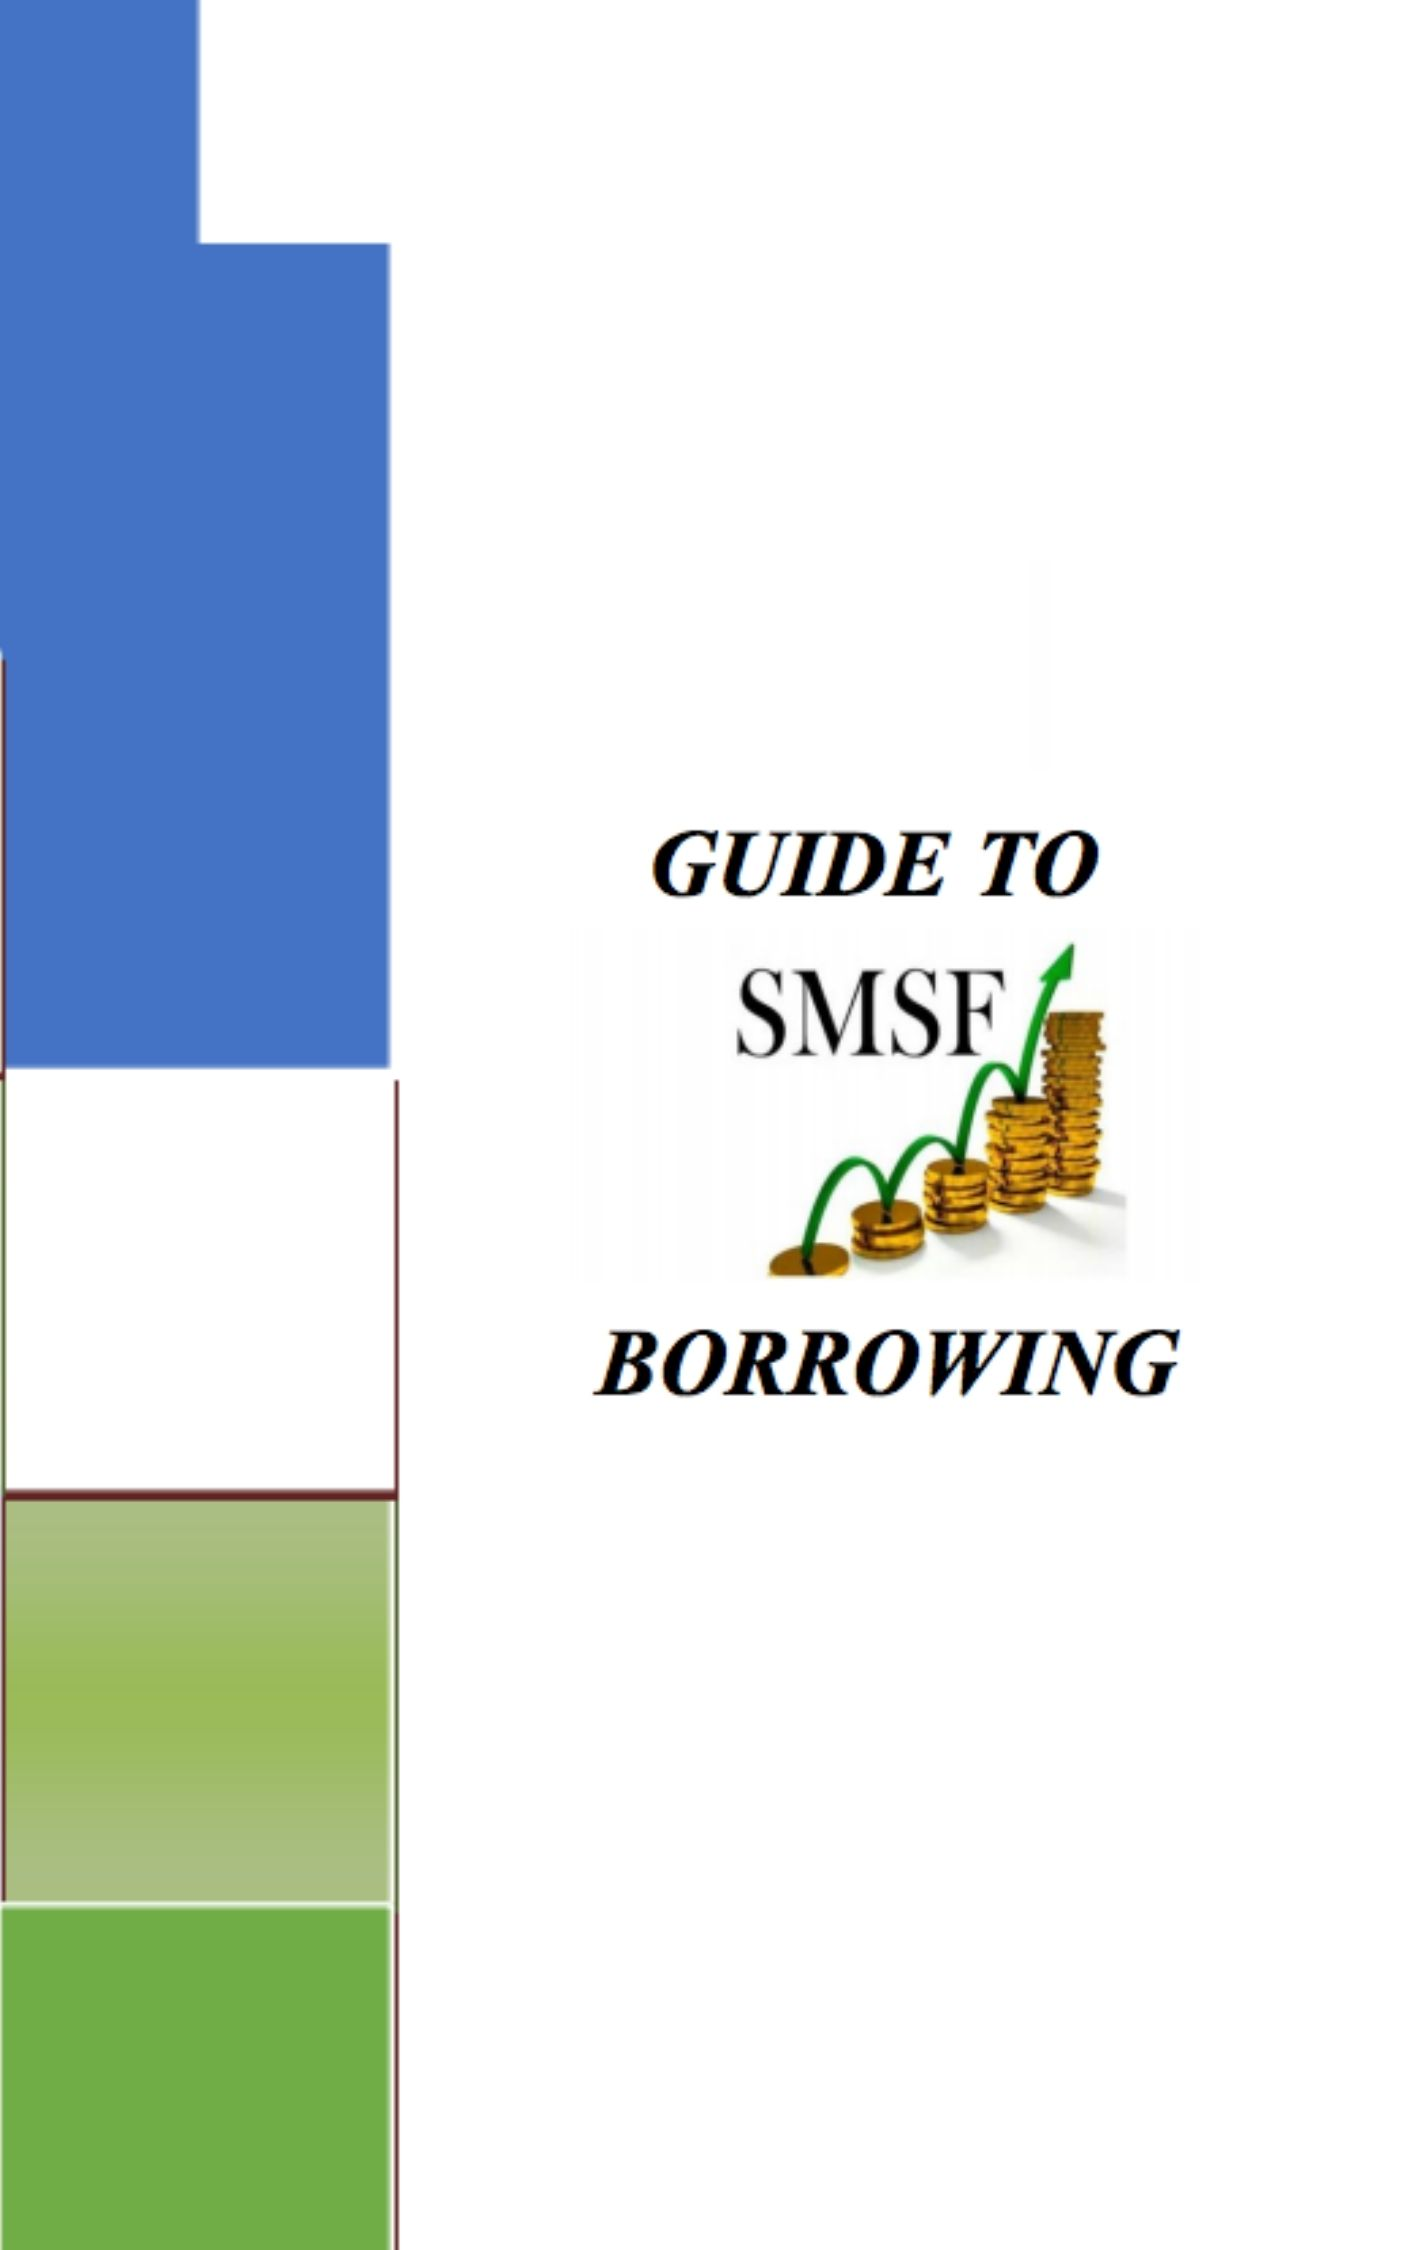 smsf-book-cover